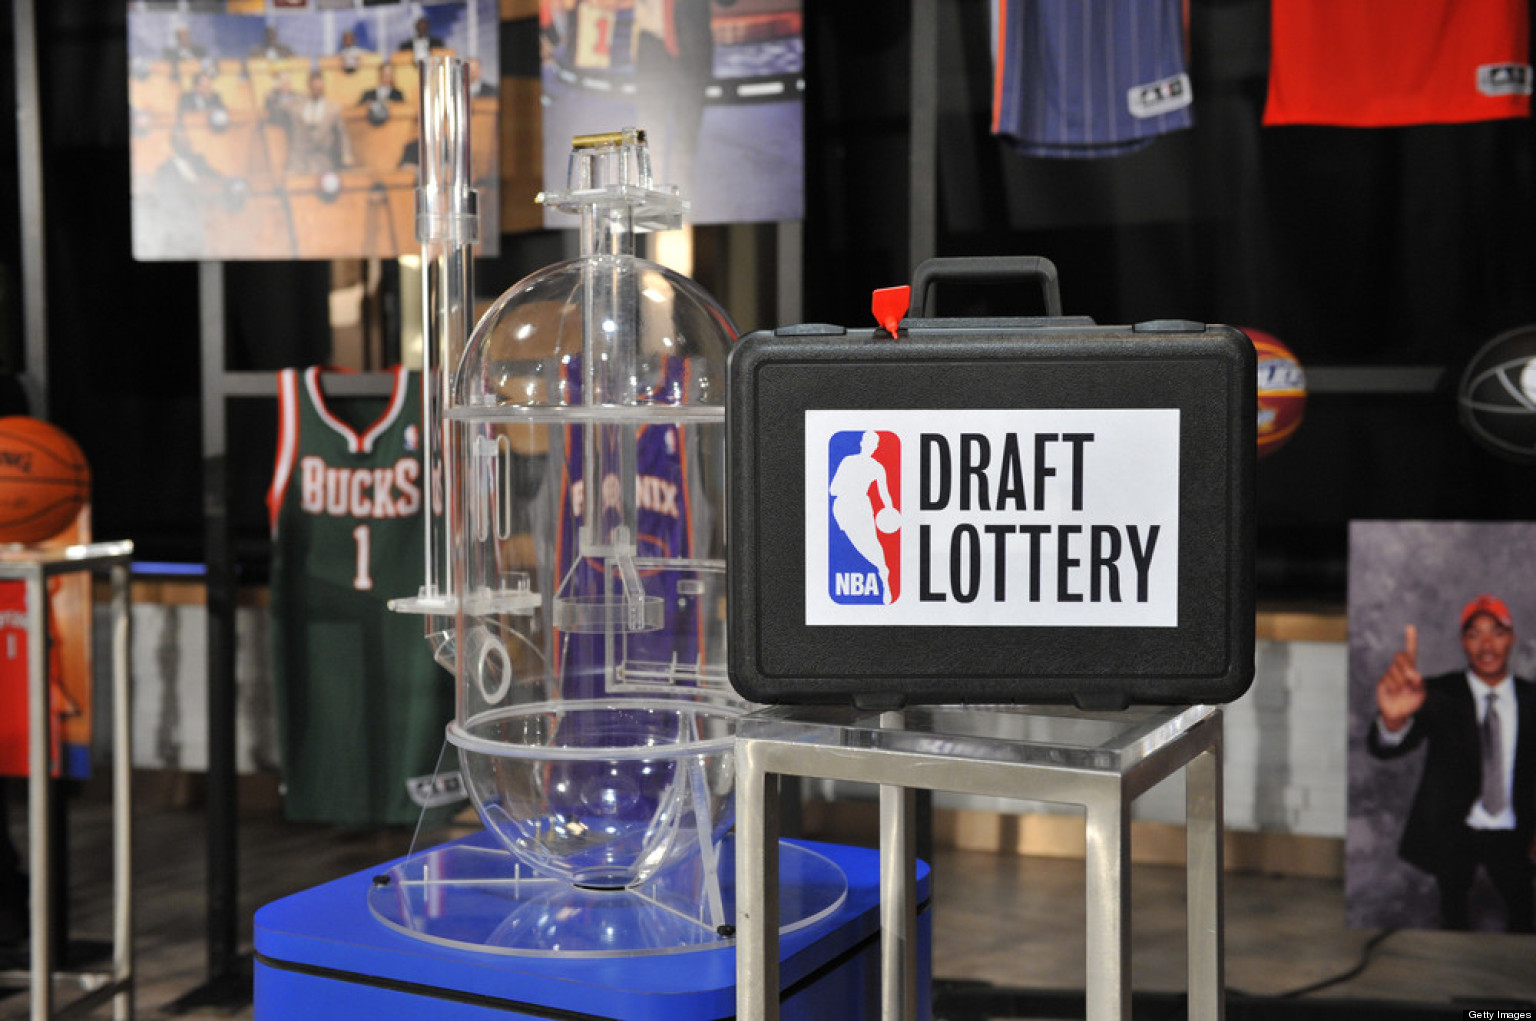 nba draft lottery results 2013 cleveland cavaliers land